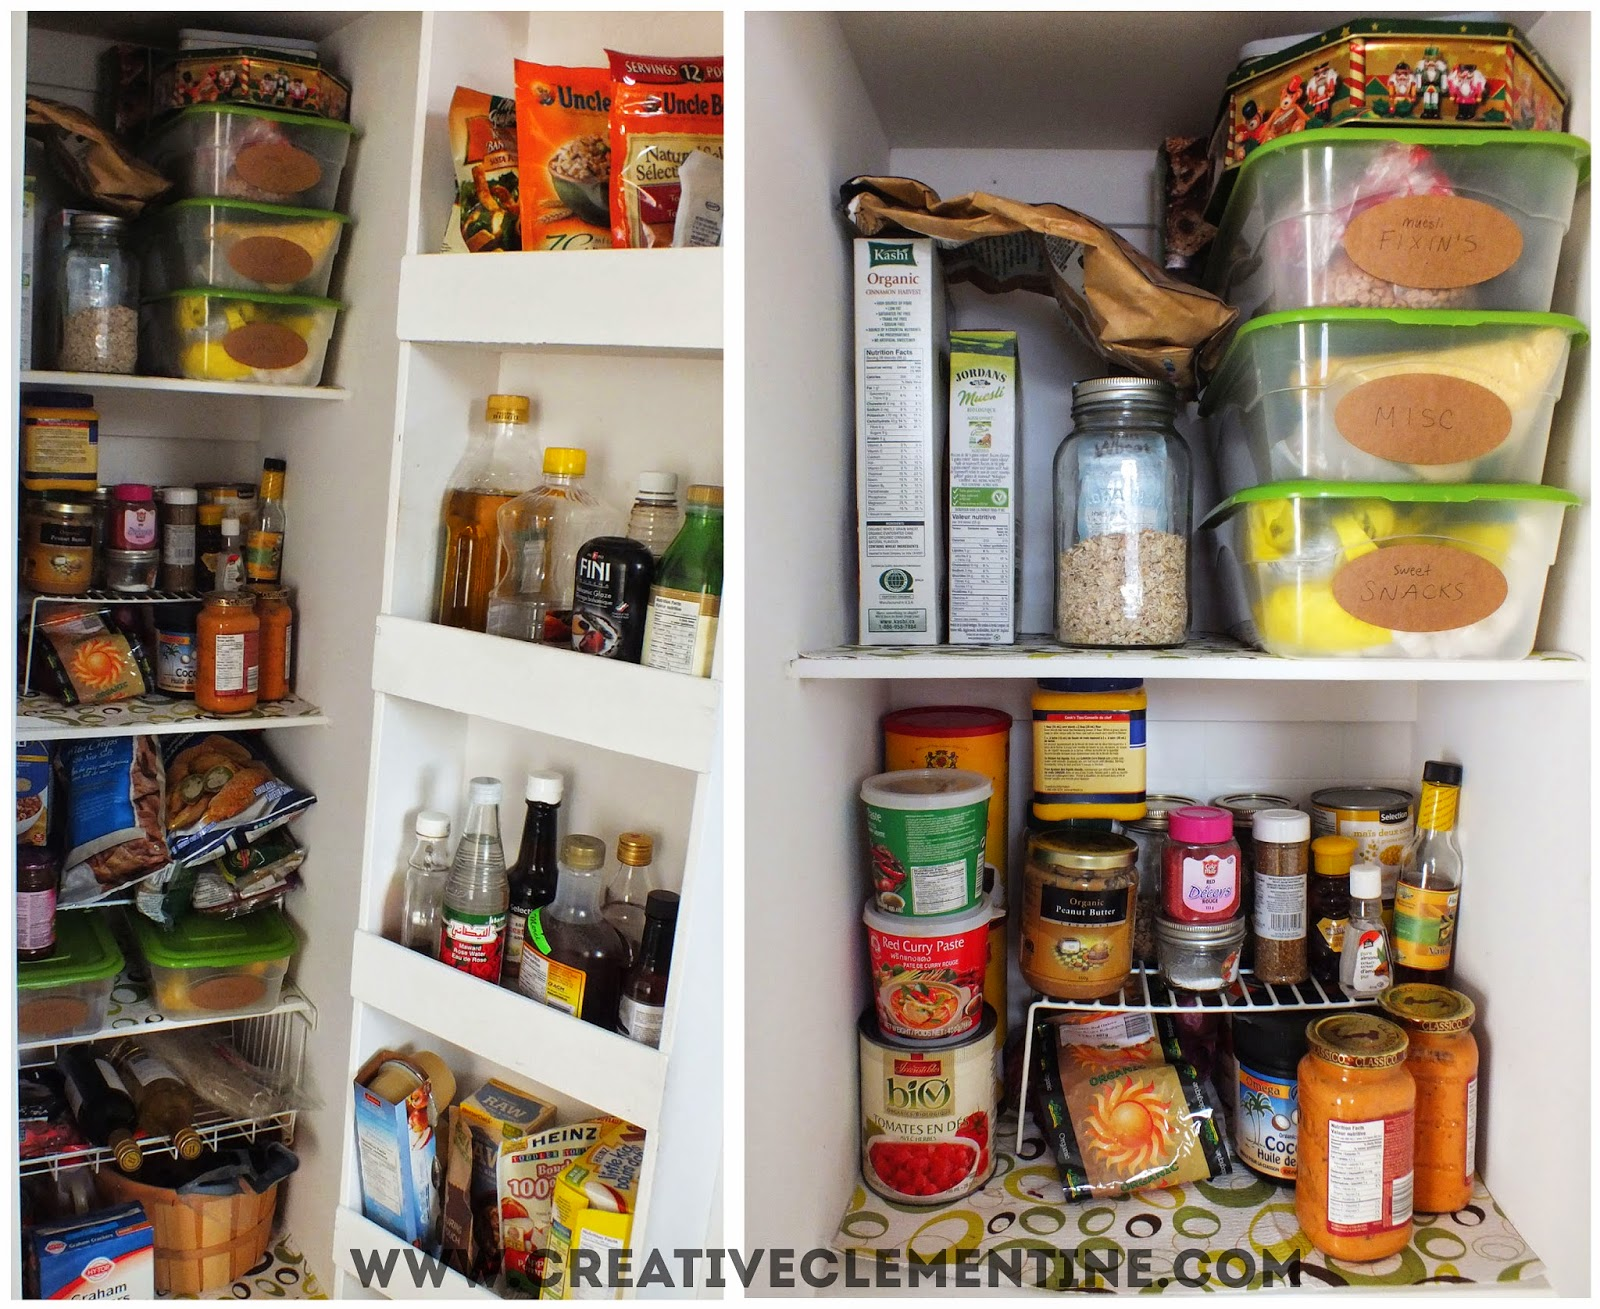 Real life messy pantry via CreativeClementine.com